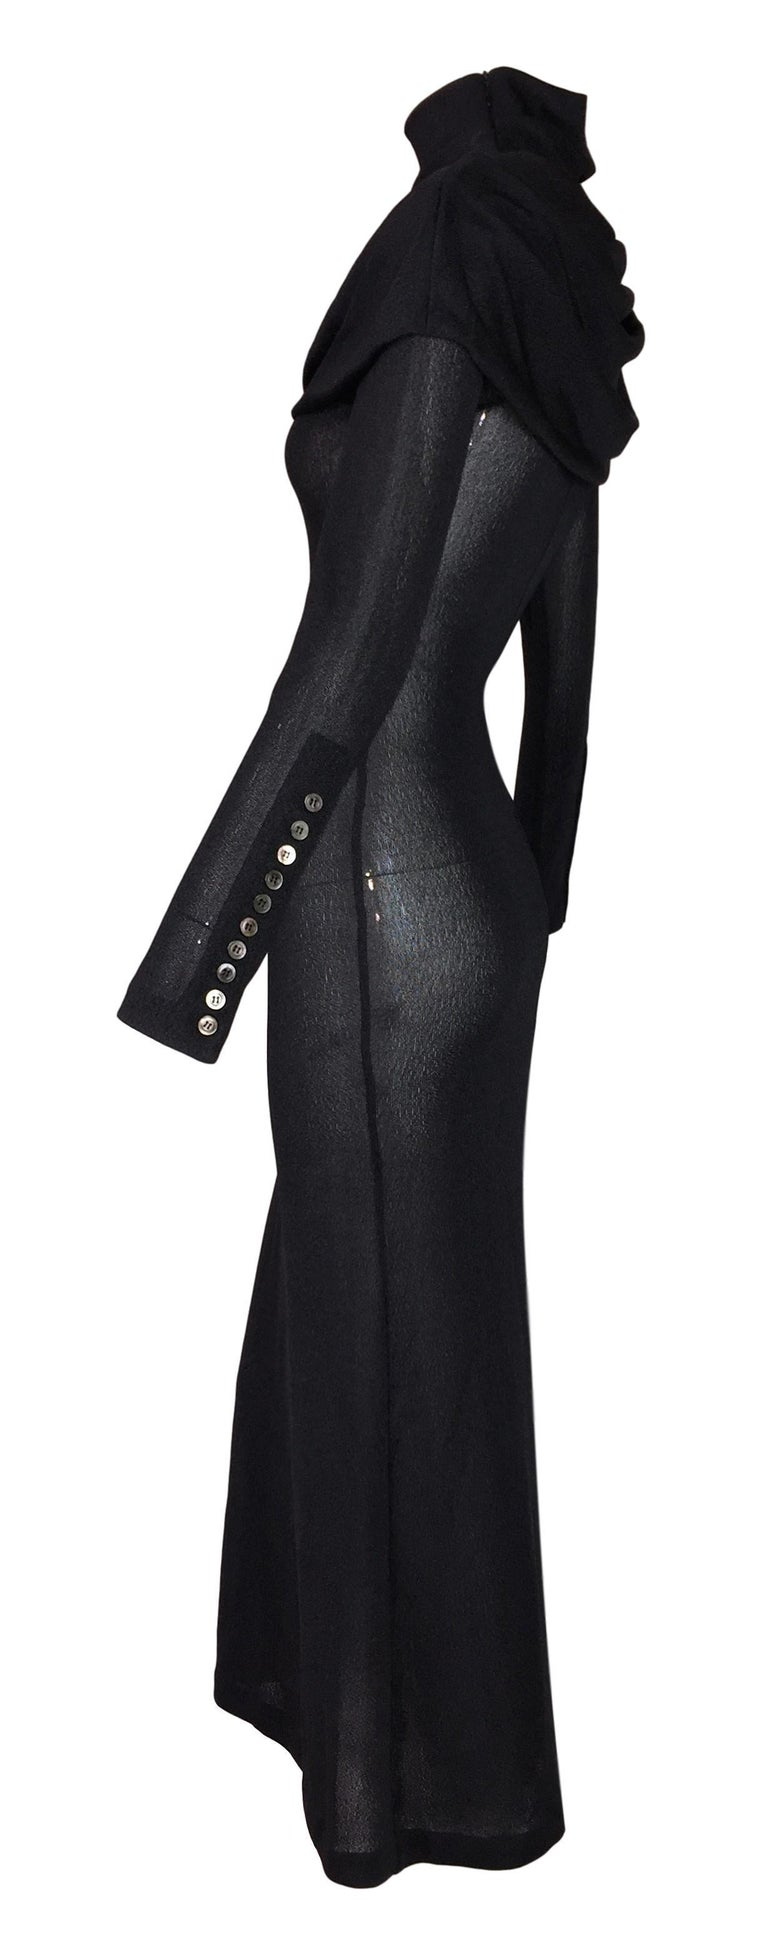 F/W 1998 Alexander McQueen Joan Sheer Black Knit L/S Catholic Gown Dress In Good Condition For Sale In Yukon, OK